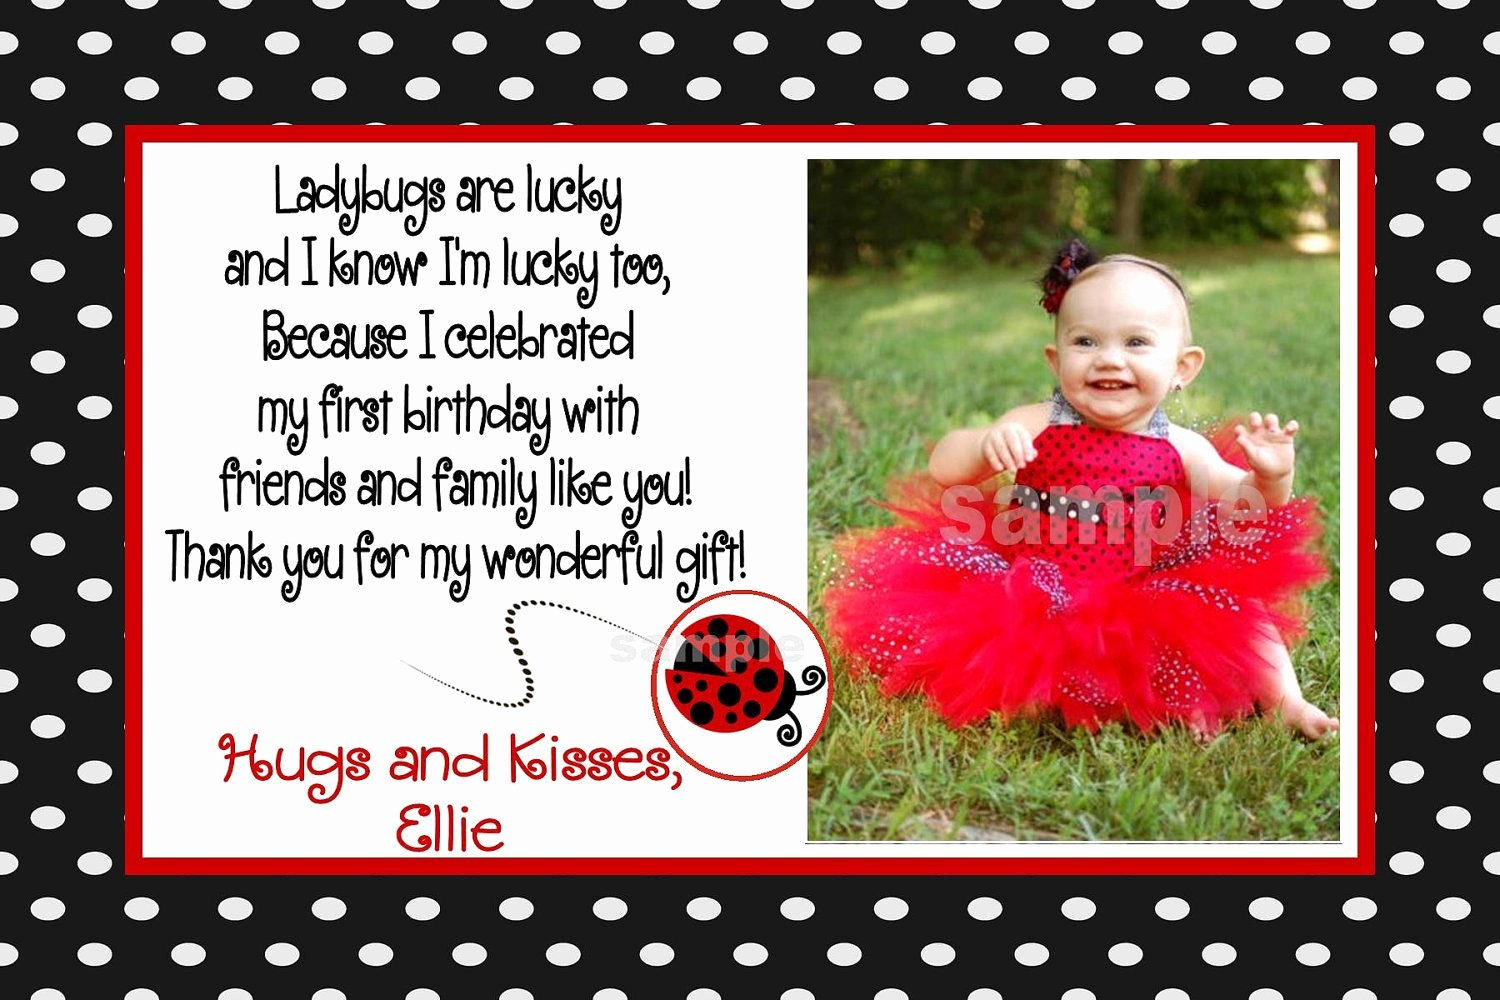 First Birthday Thank You Cards Unique Lady Bug First Birthday Thank You Cards